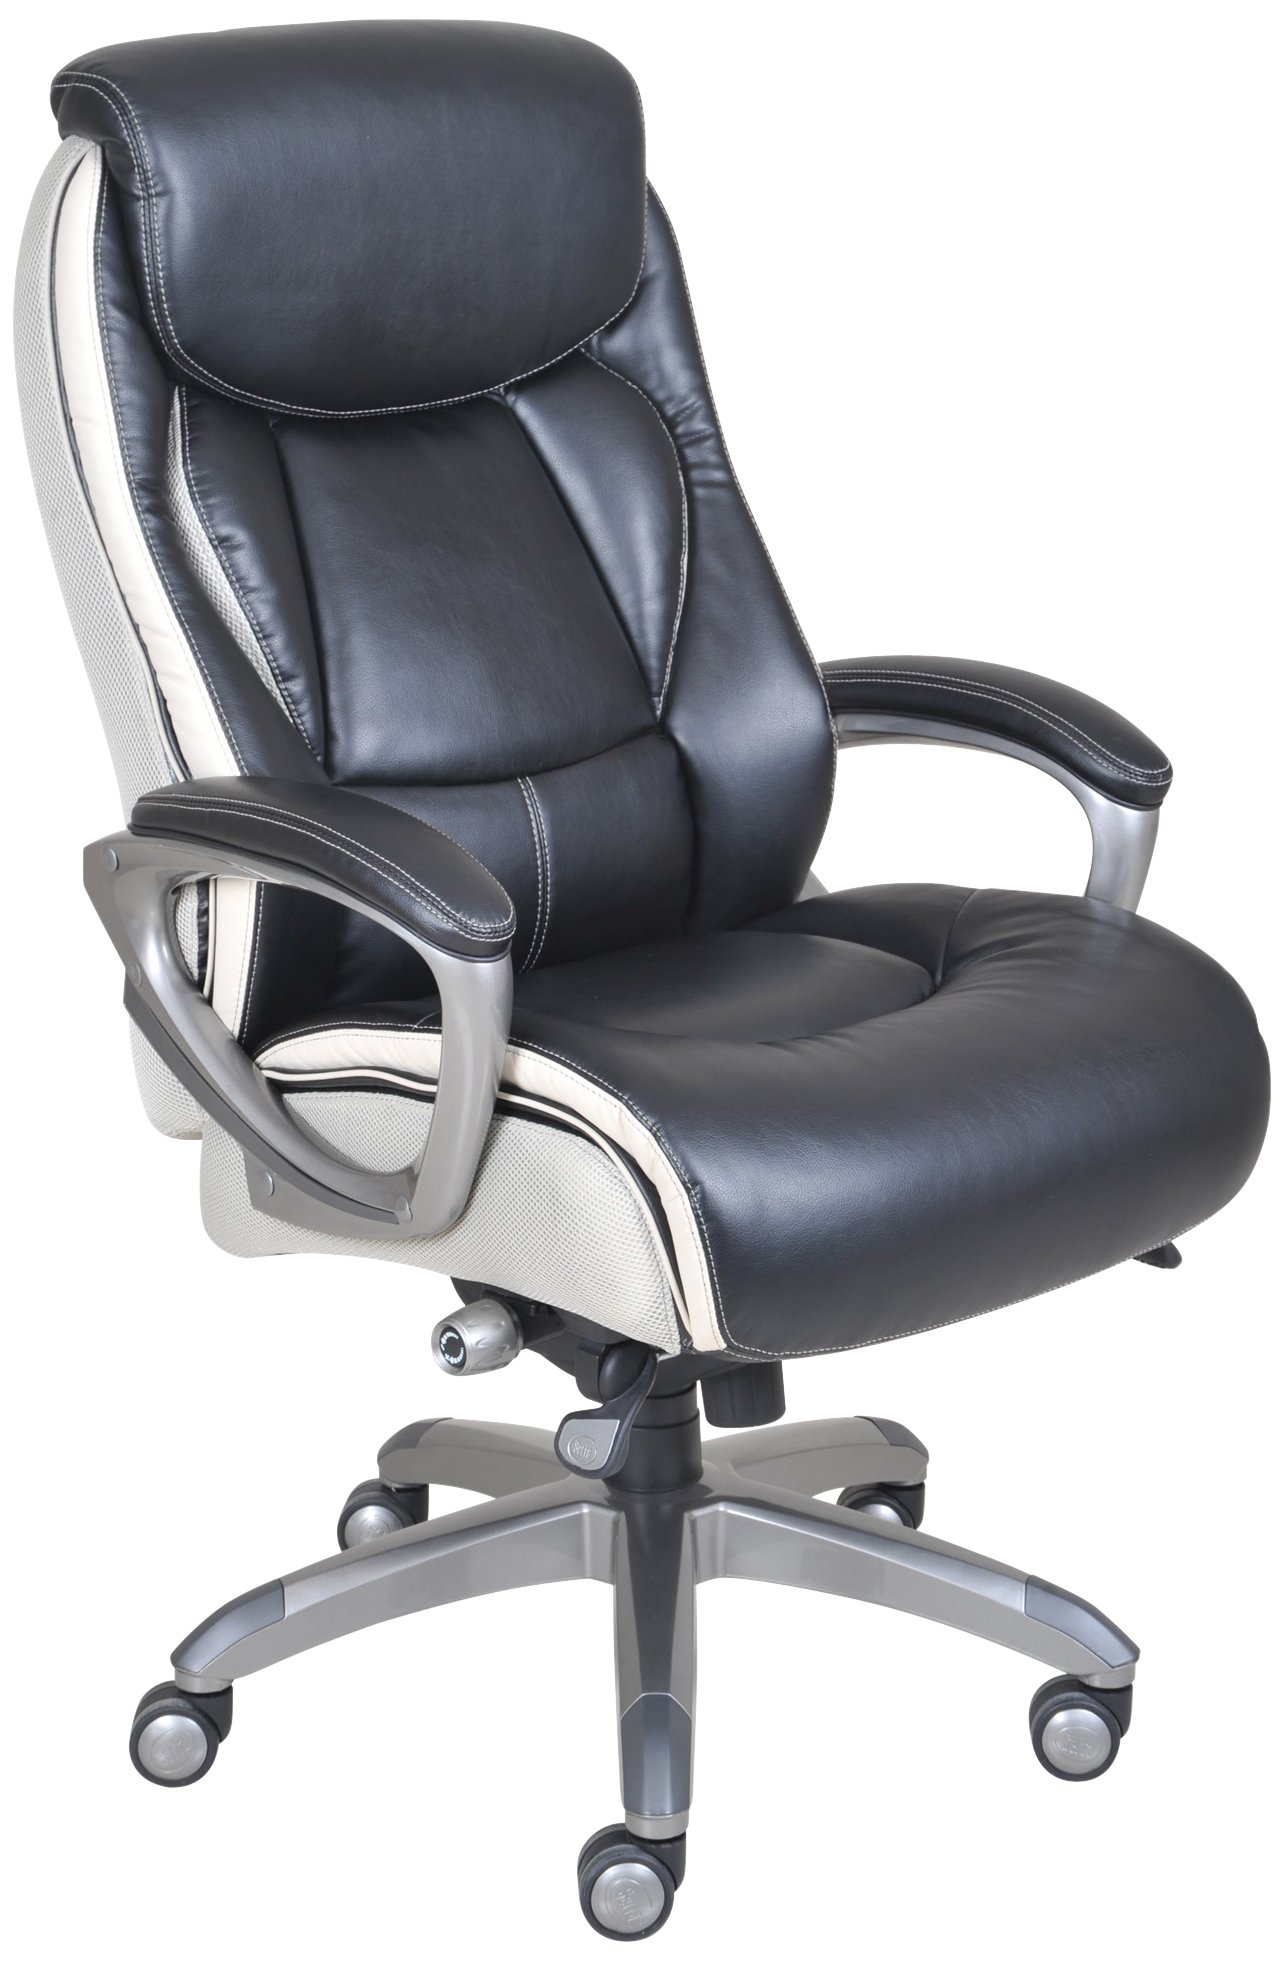 Serta Smart Layers Executive Tranquility fice Chair Multicolor